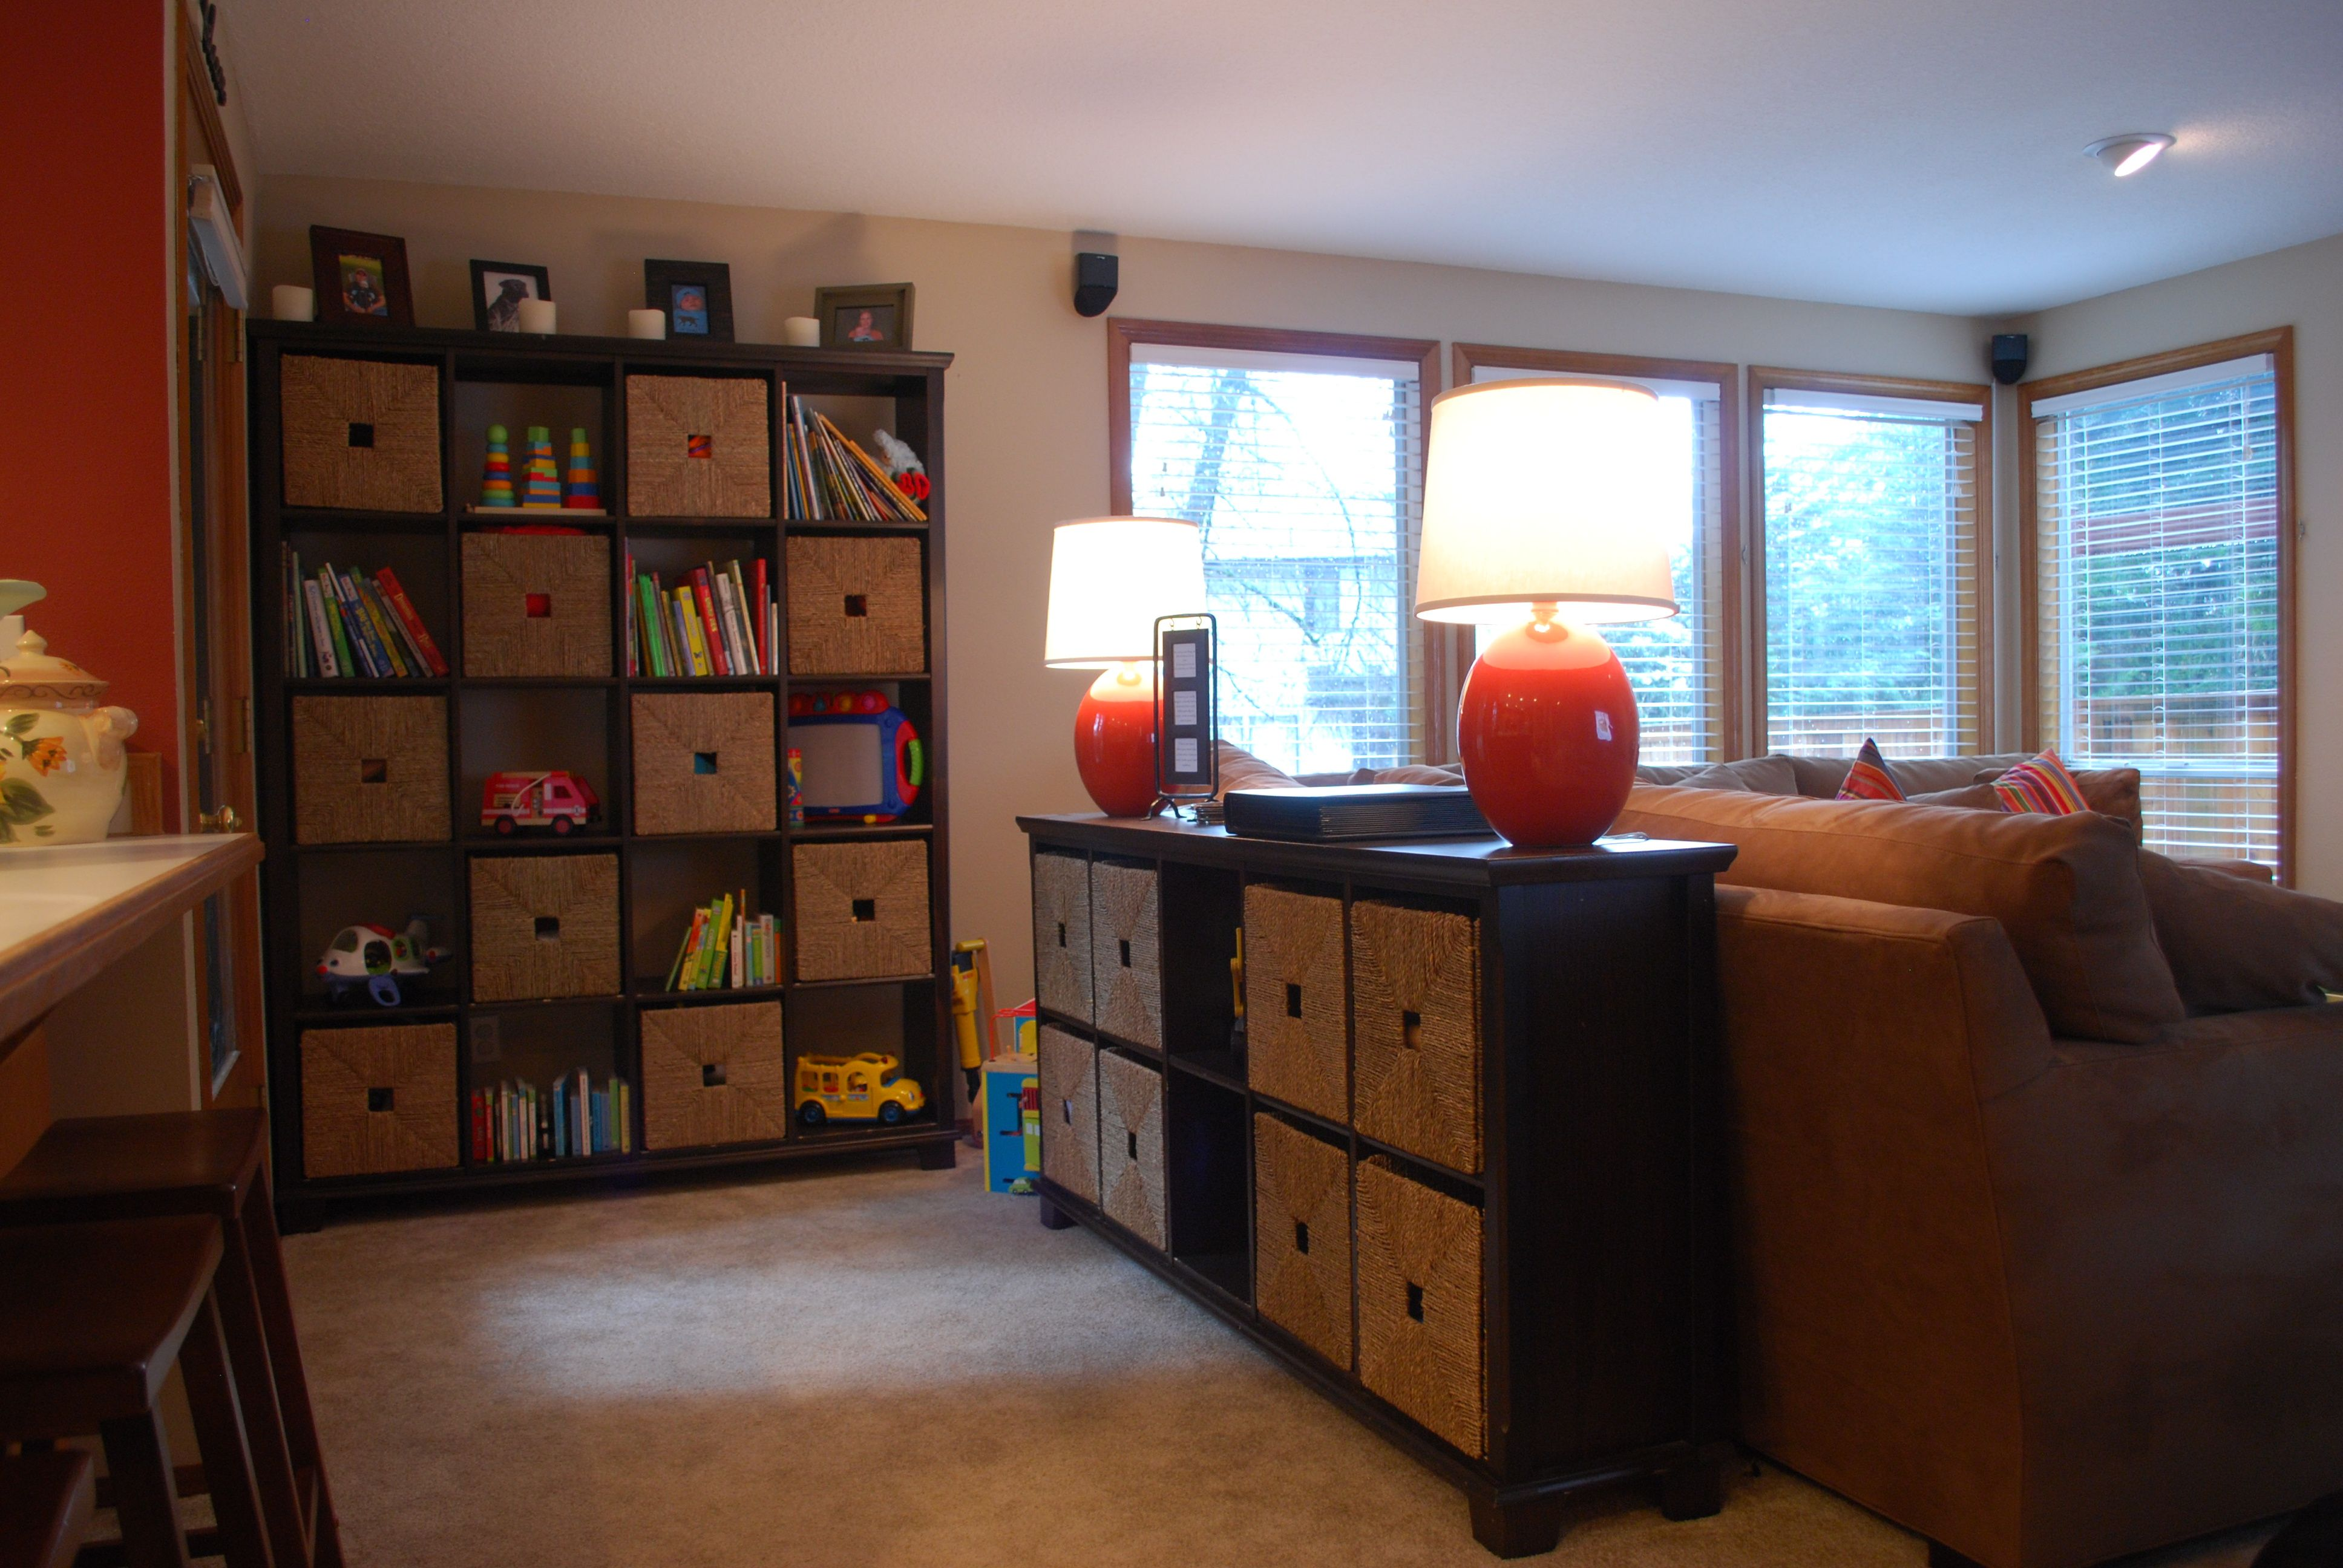 Storage for family room grown up looking storage solutions for kid friendly spaces home is